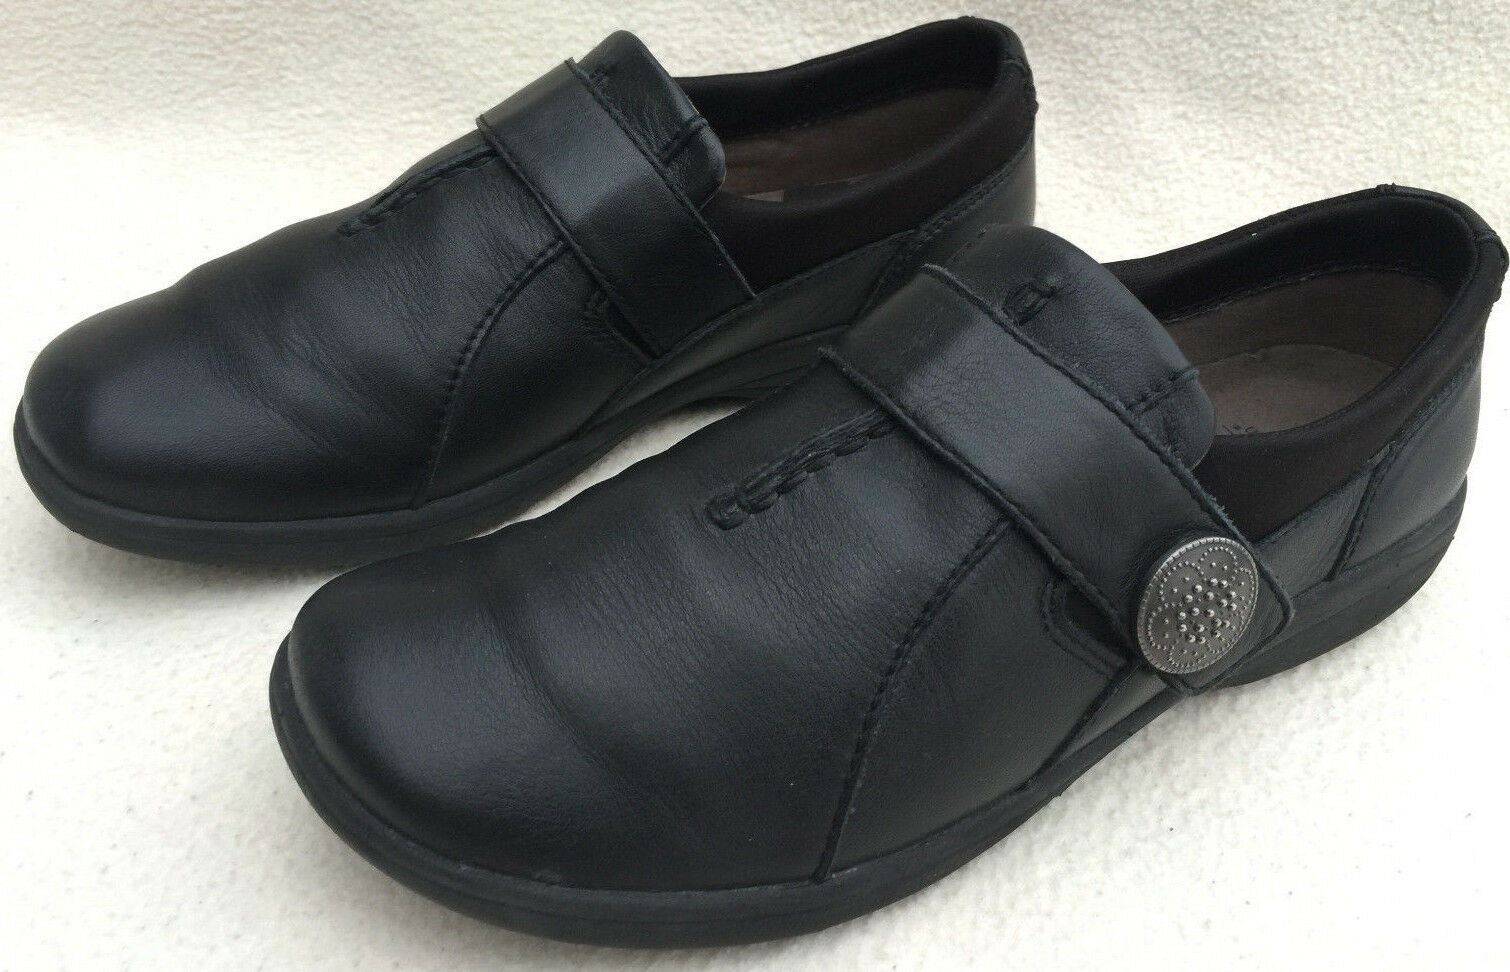 Abeo 3540 Smart System Black Leather Slip-On Walking Comfort Shoes Women's 6.5